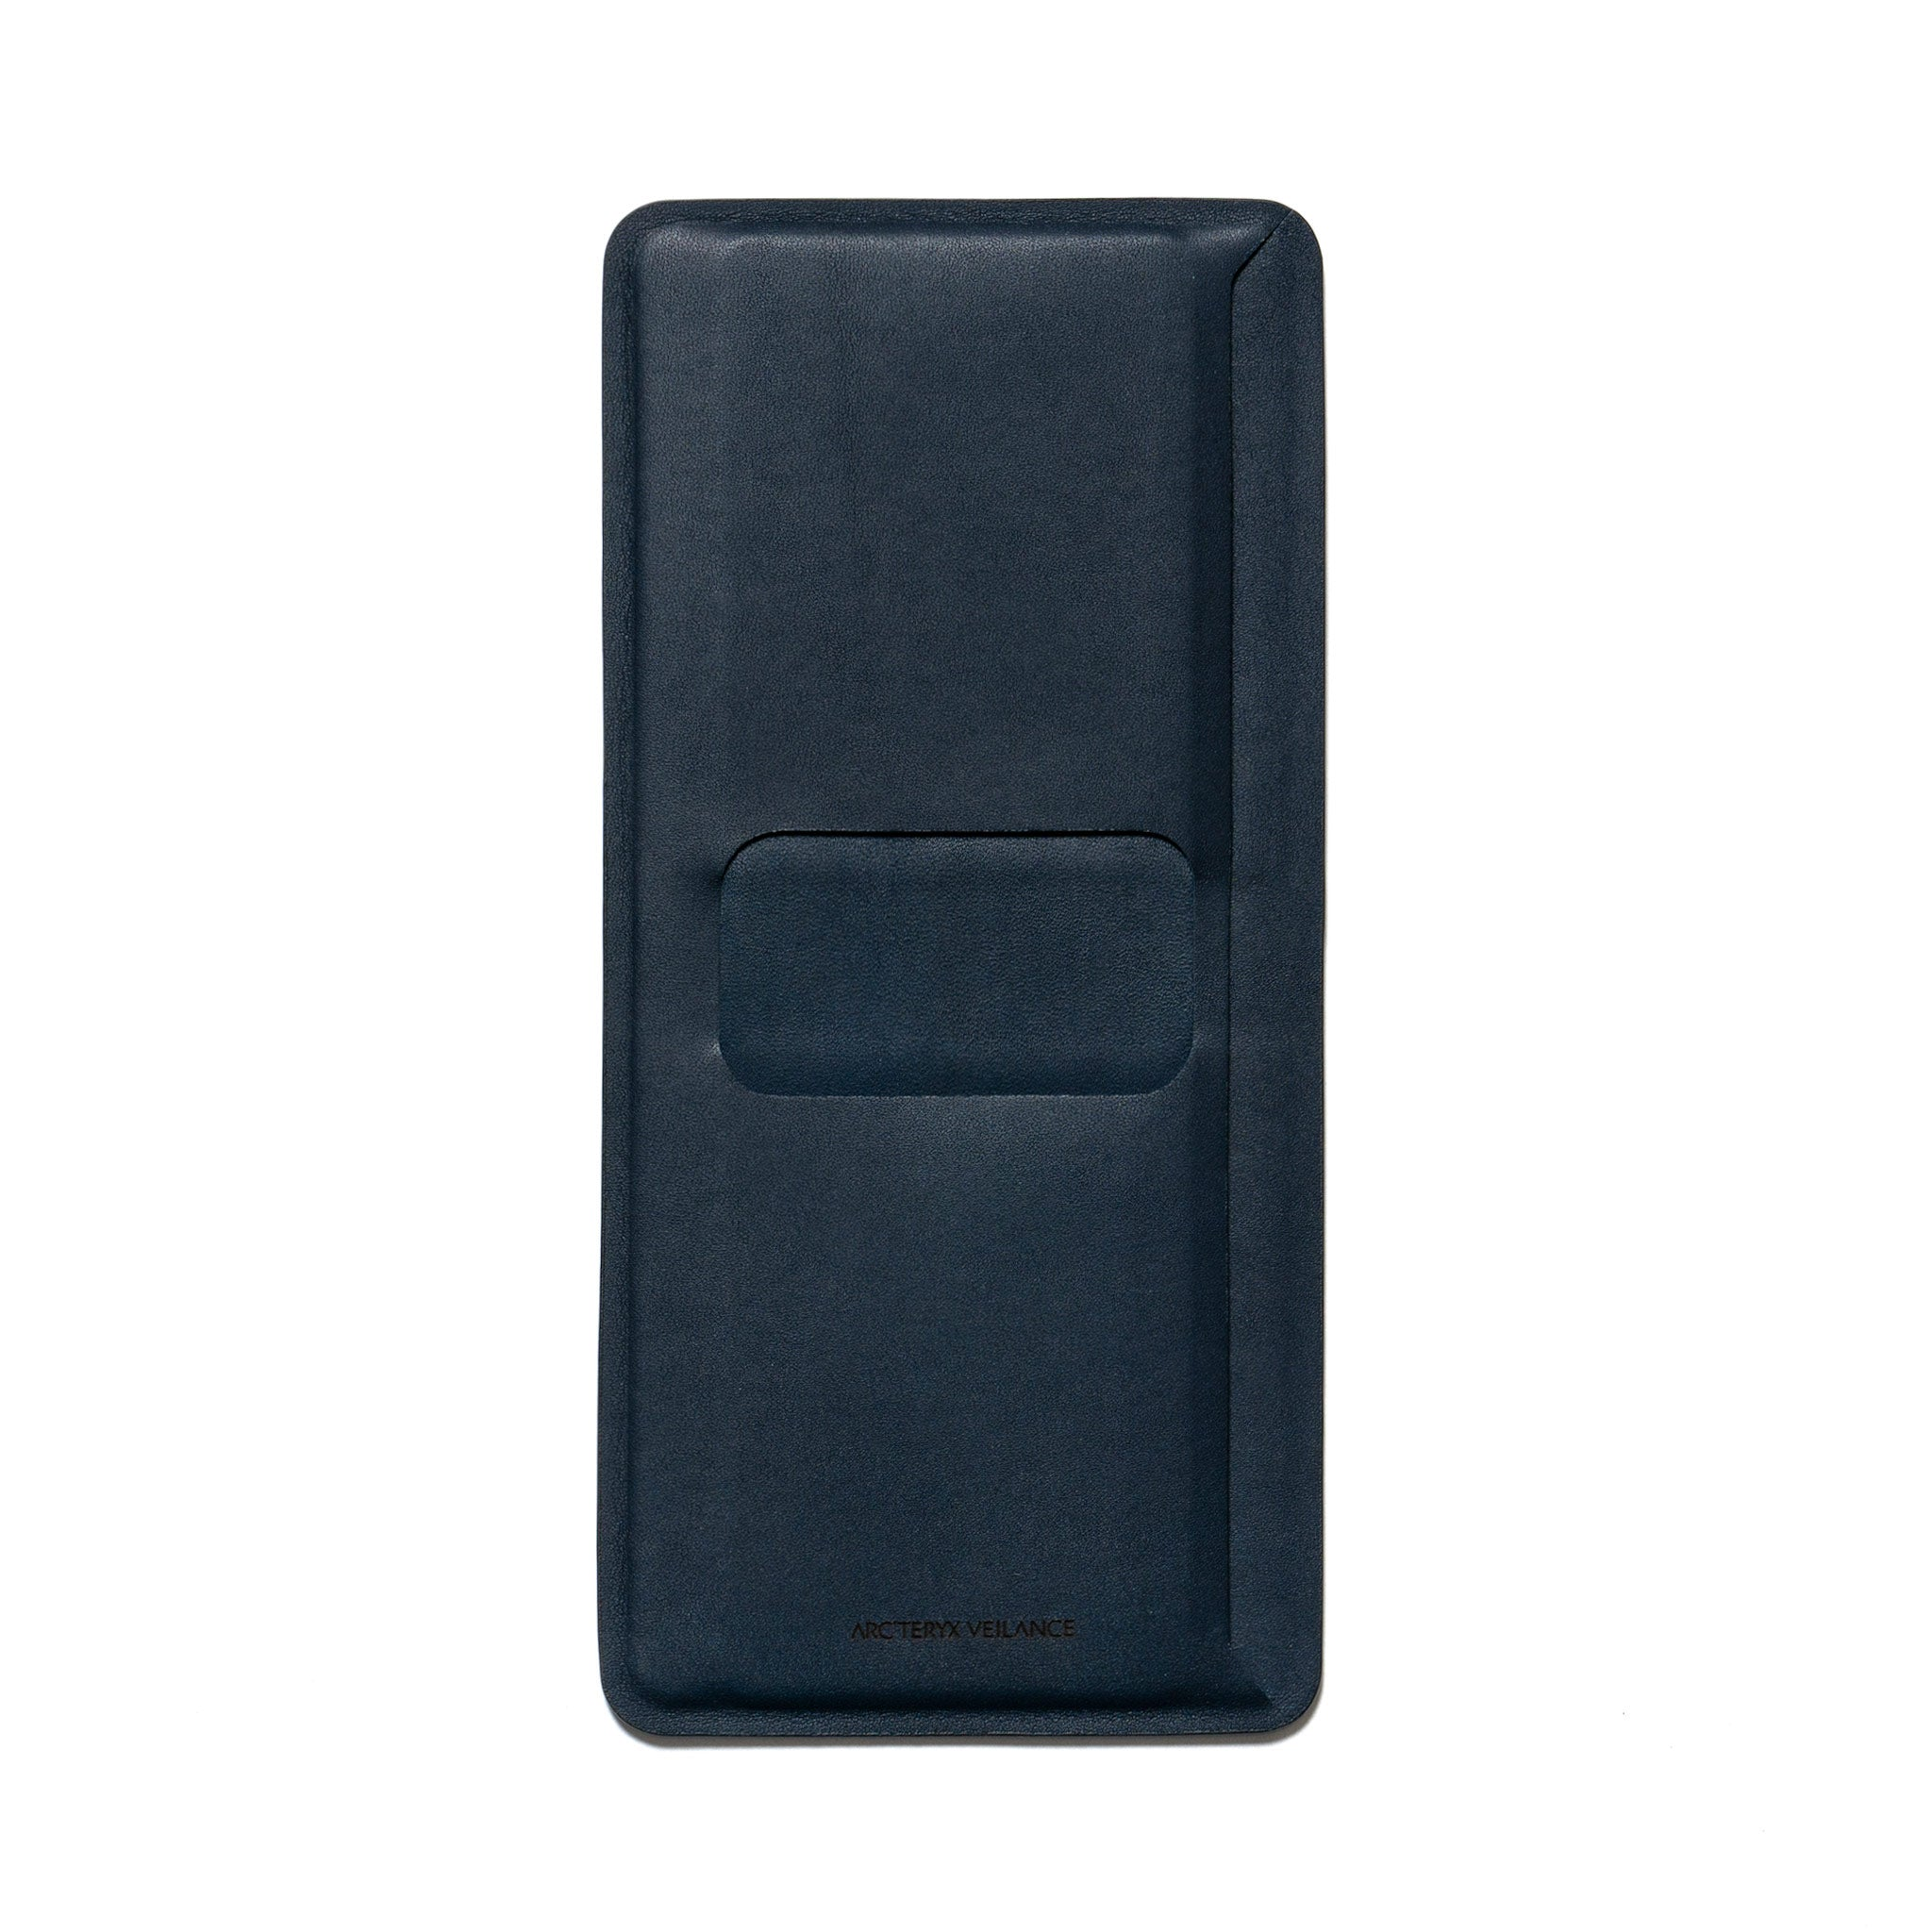 HAVEN-Arcteryx-Veilance-Casing-Billfold-